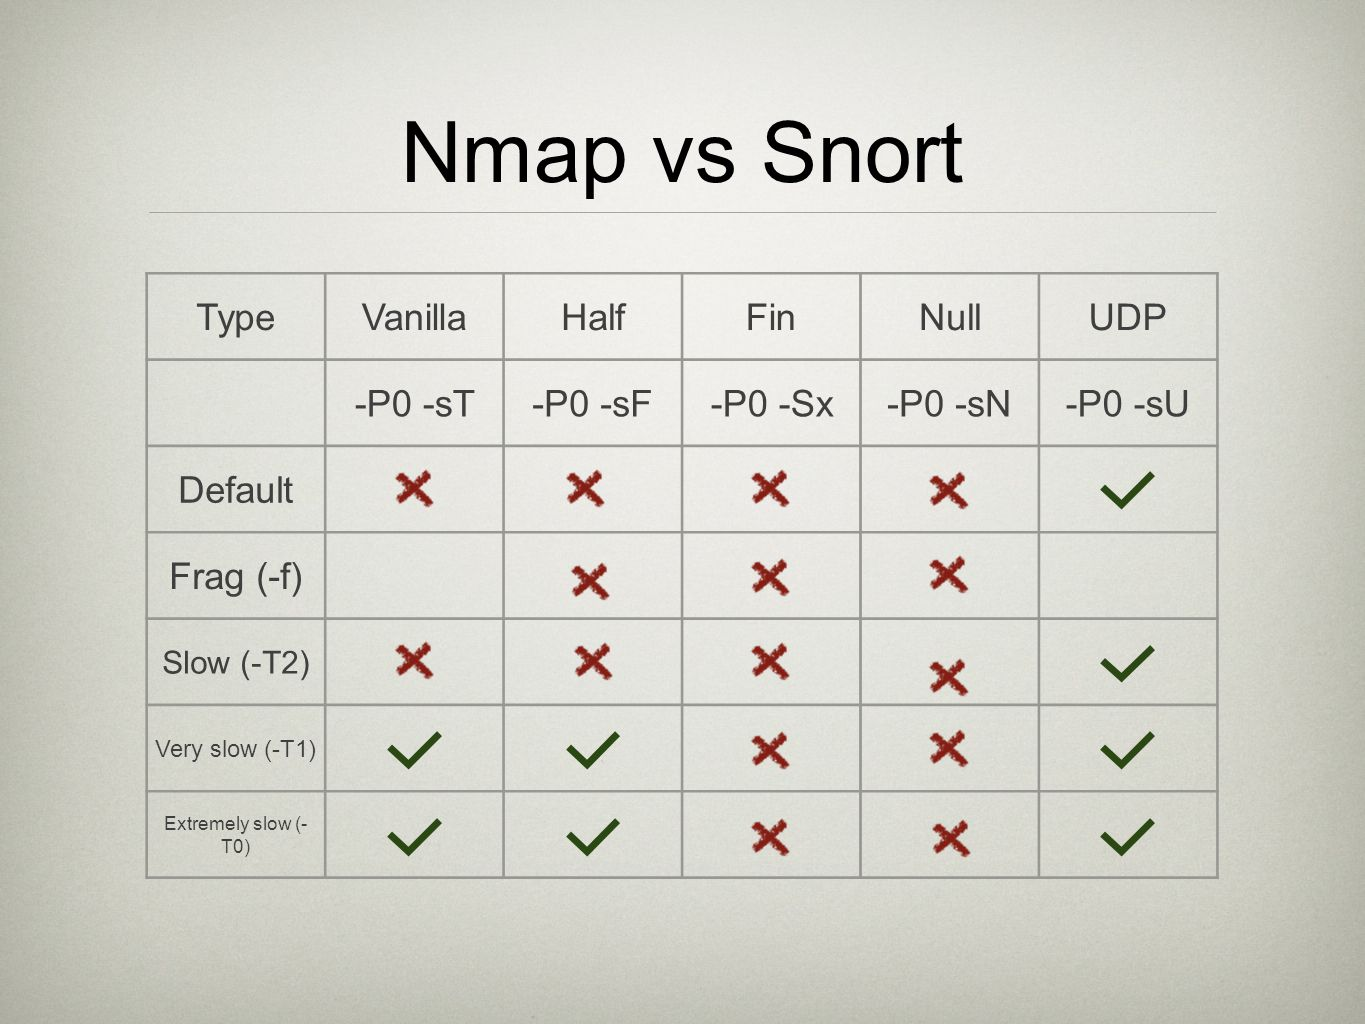 Nmap vs Snort TypeVanillaHalfFinNullUDP -P0 -sT-P0 -sF-P0 -Sx-P0 -sN-P0 -sU Default Frag (-f) Slow (-T2) Very slow (-T1) Extremely slow (- T0)